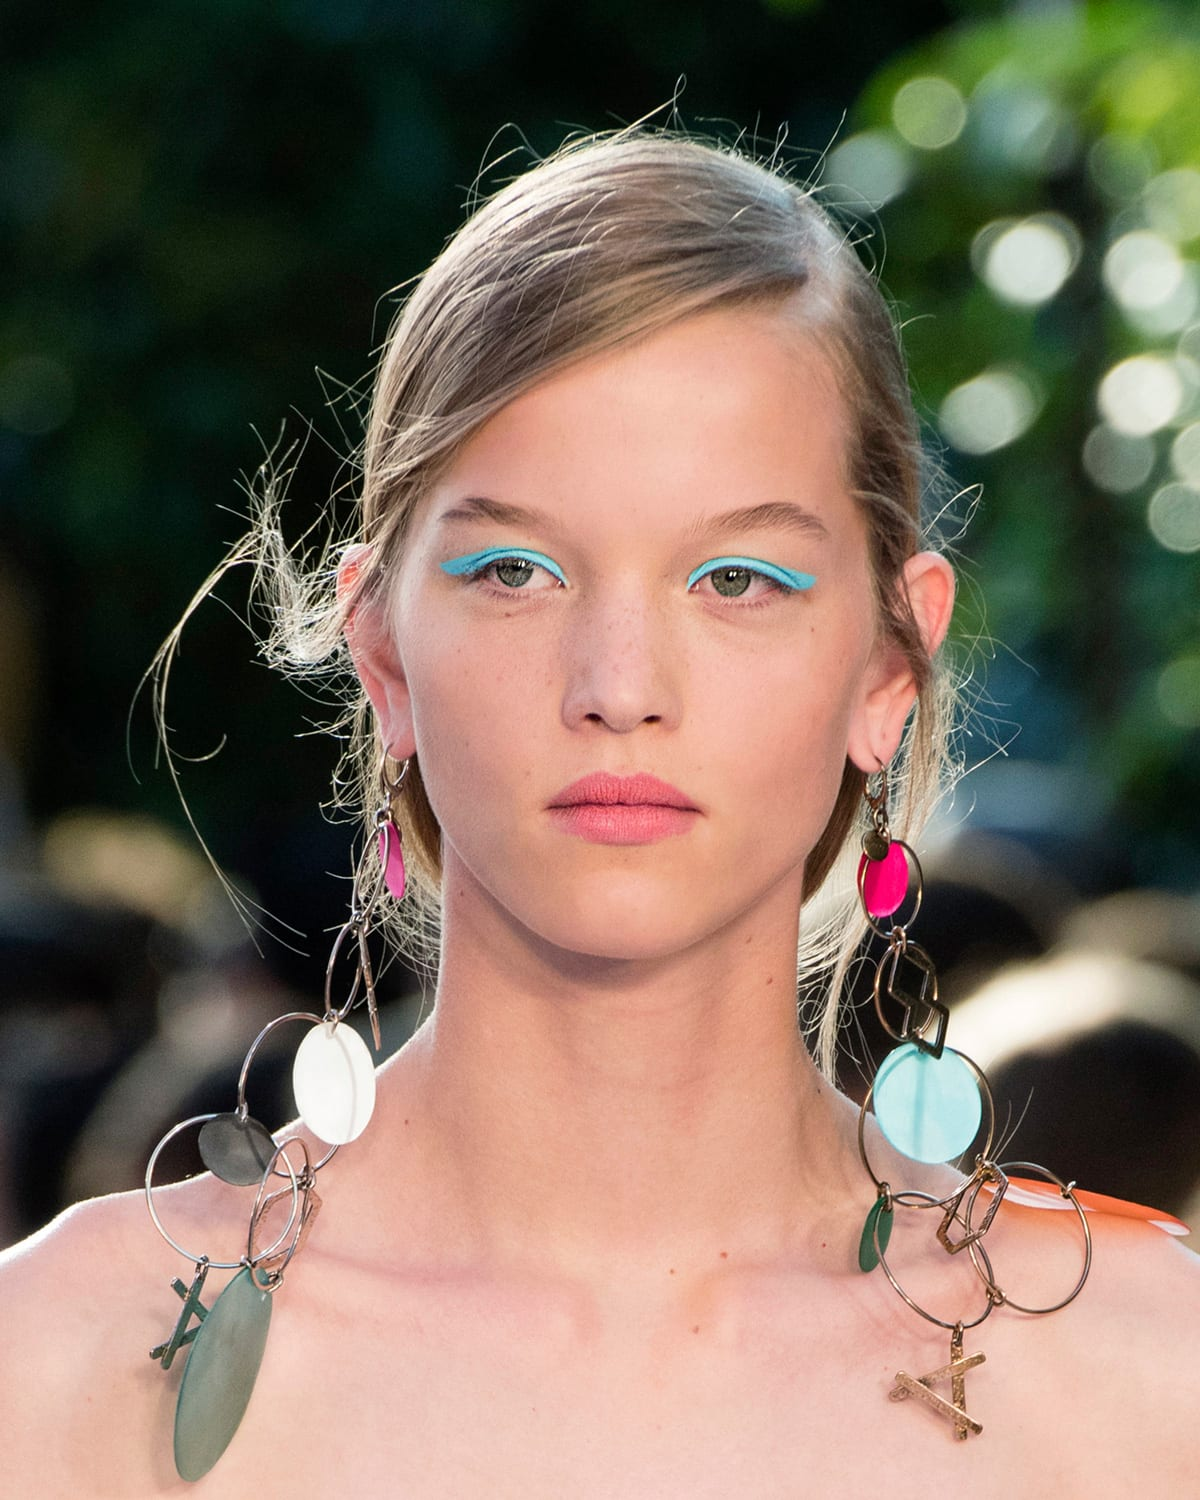 Missoni-Tracy-Reese_Augen-Make-up-Looks